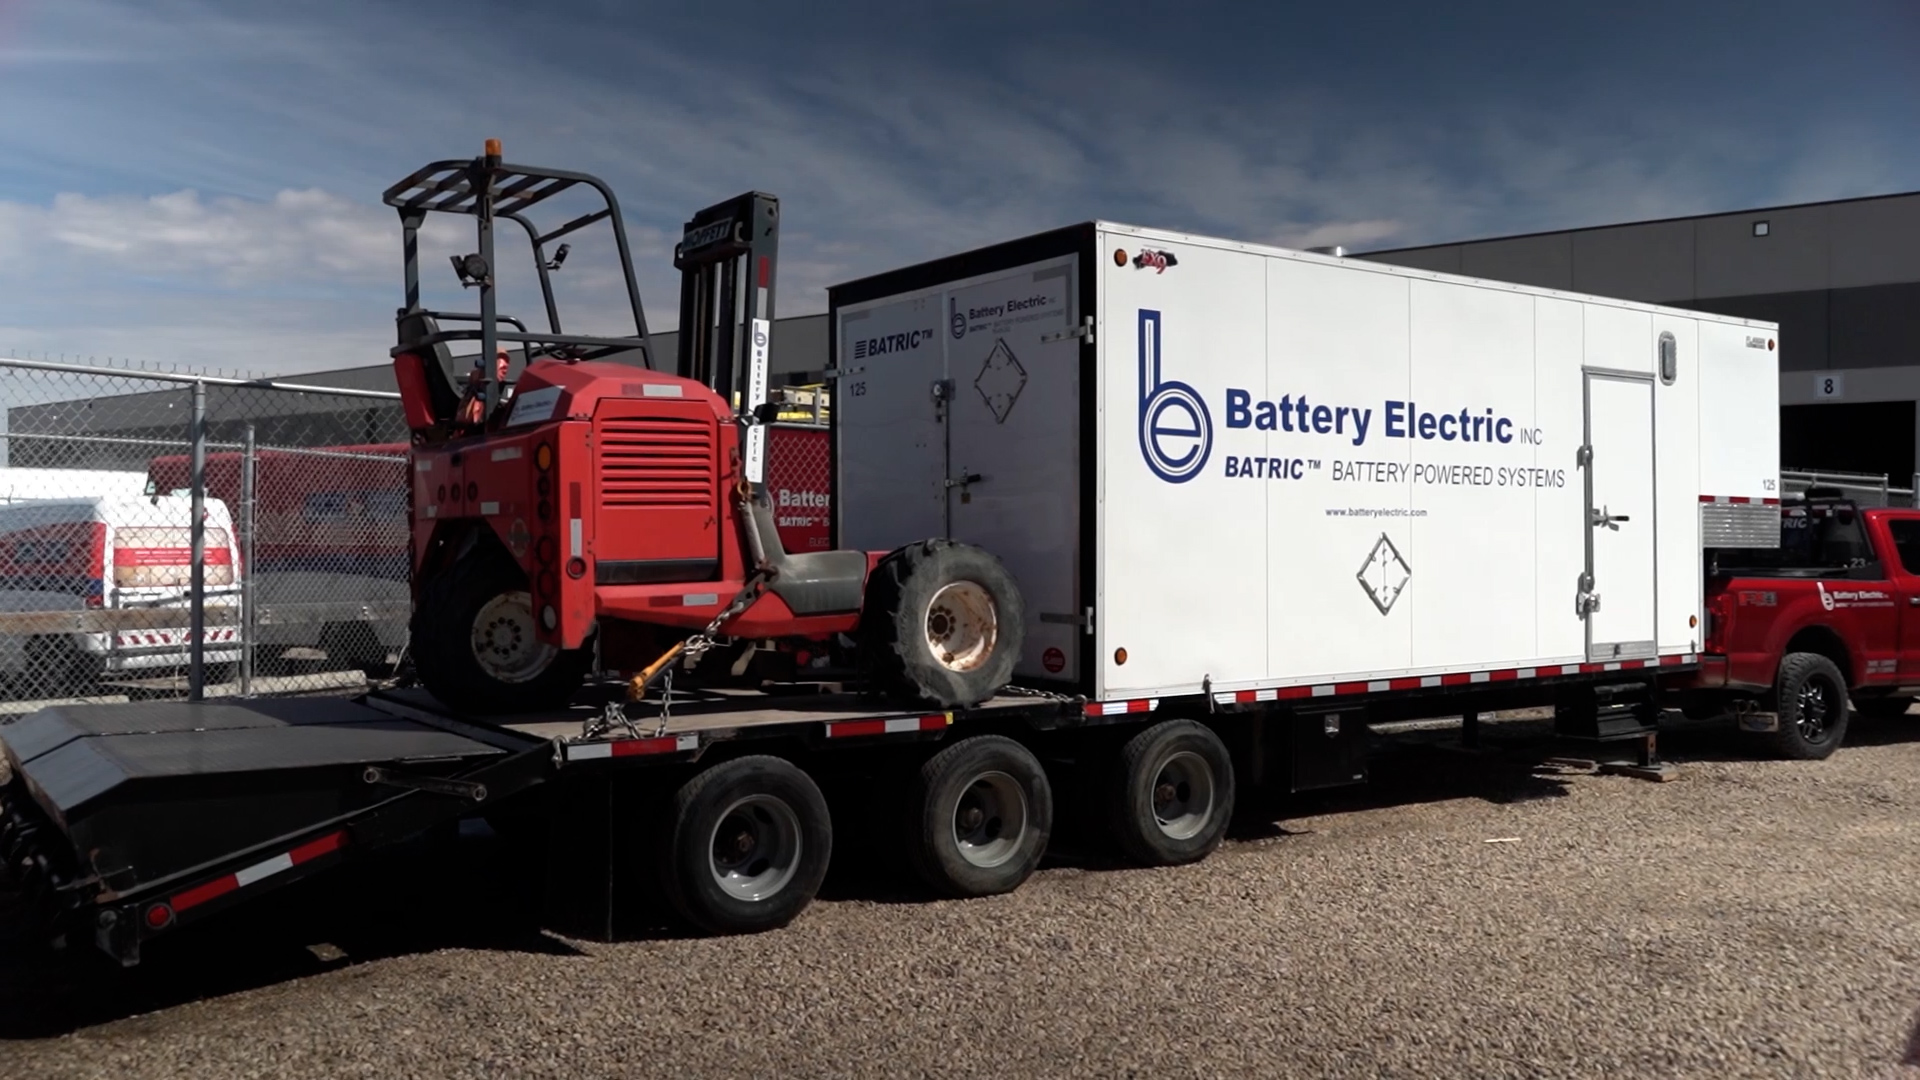 Battery Electric Trailer and Truck